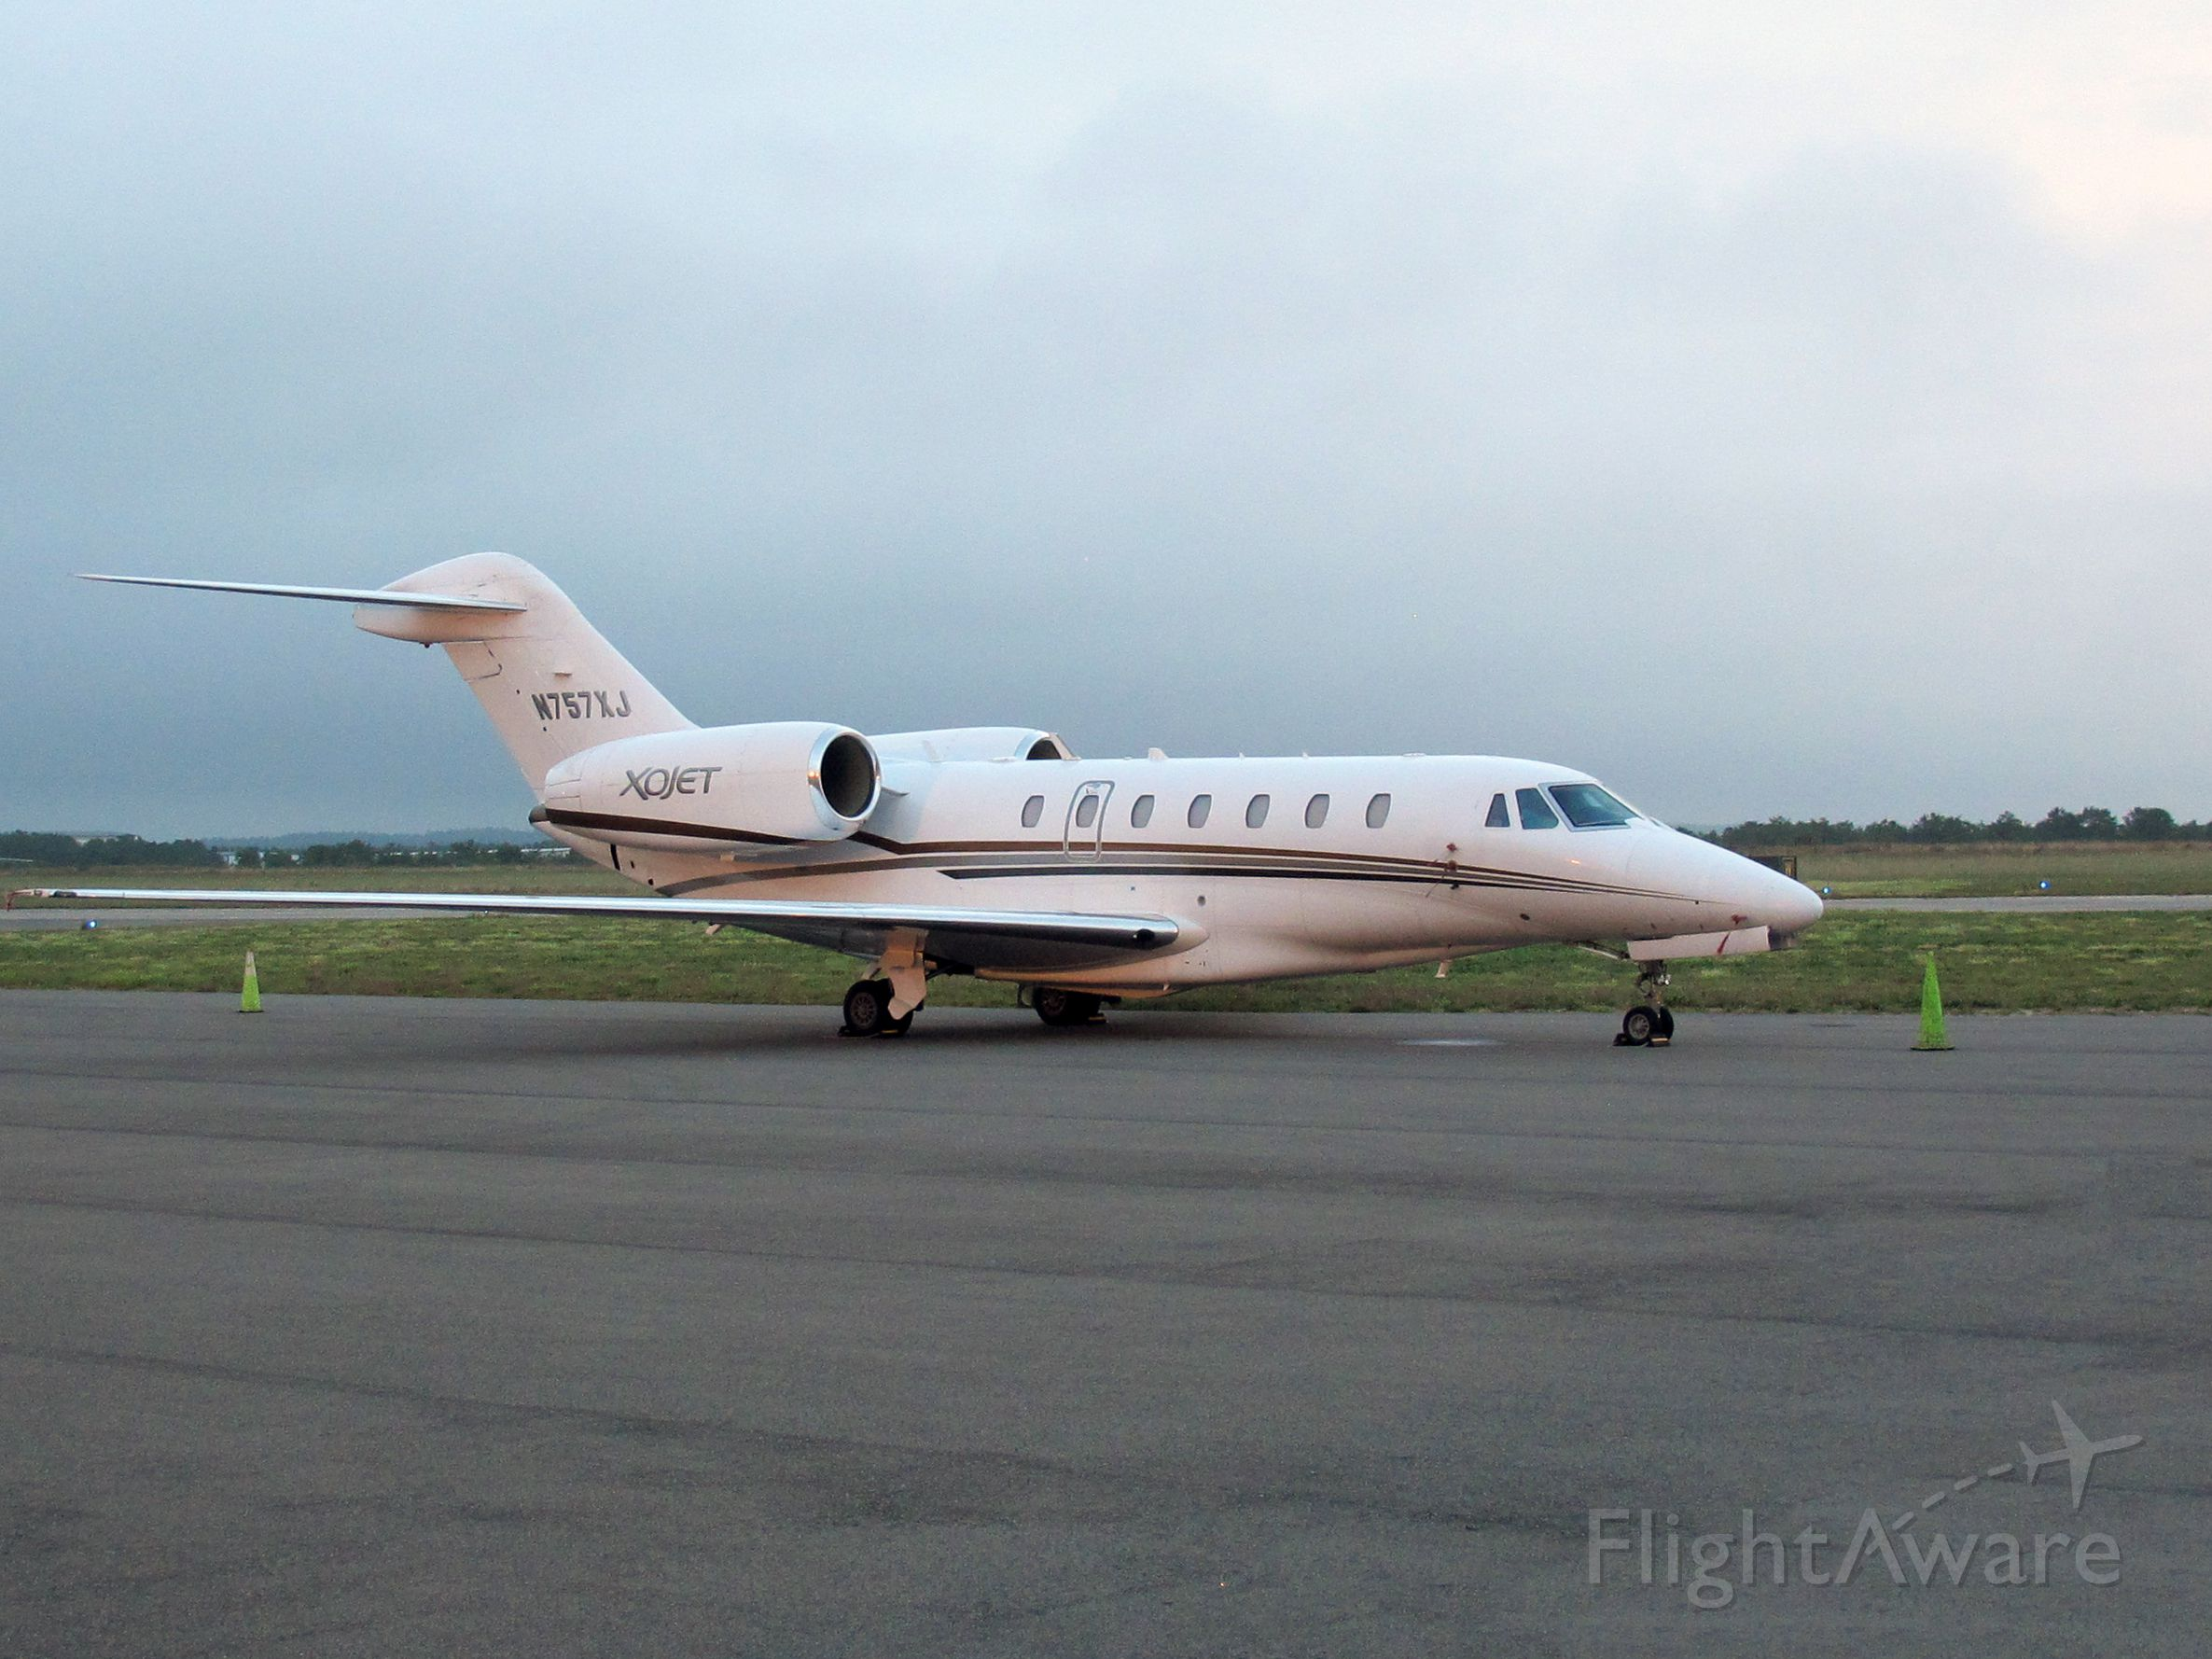 Cessna Citation X (N757XJ) - One of the fastest business jets in the market.